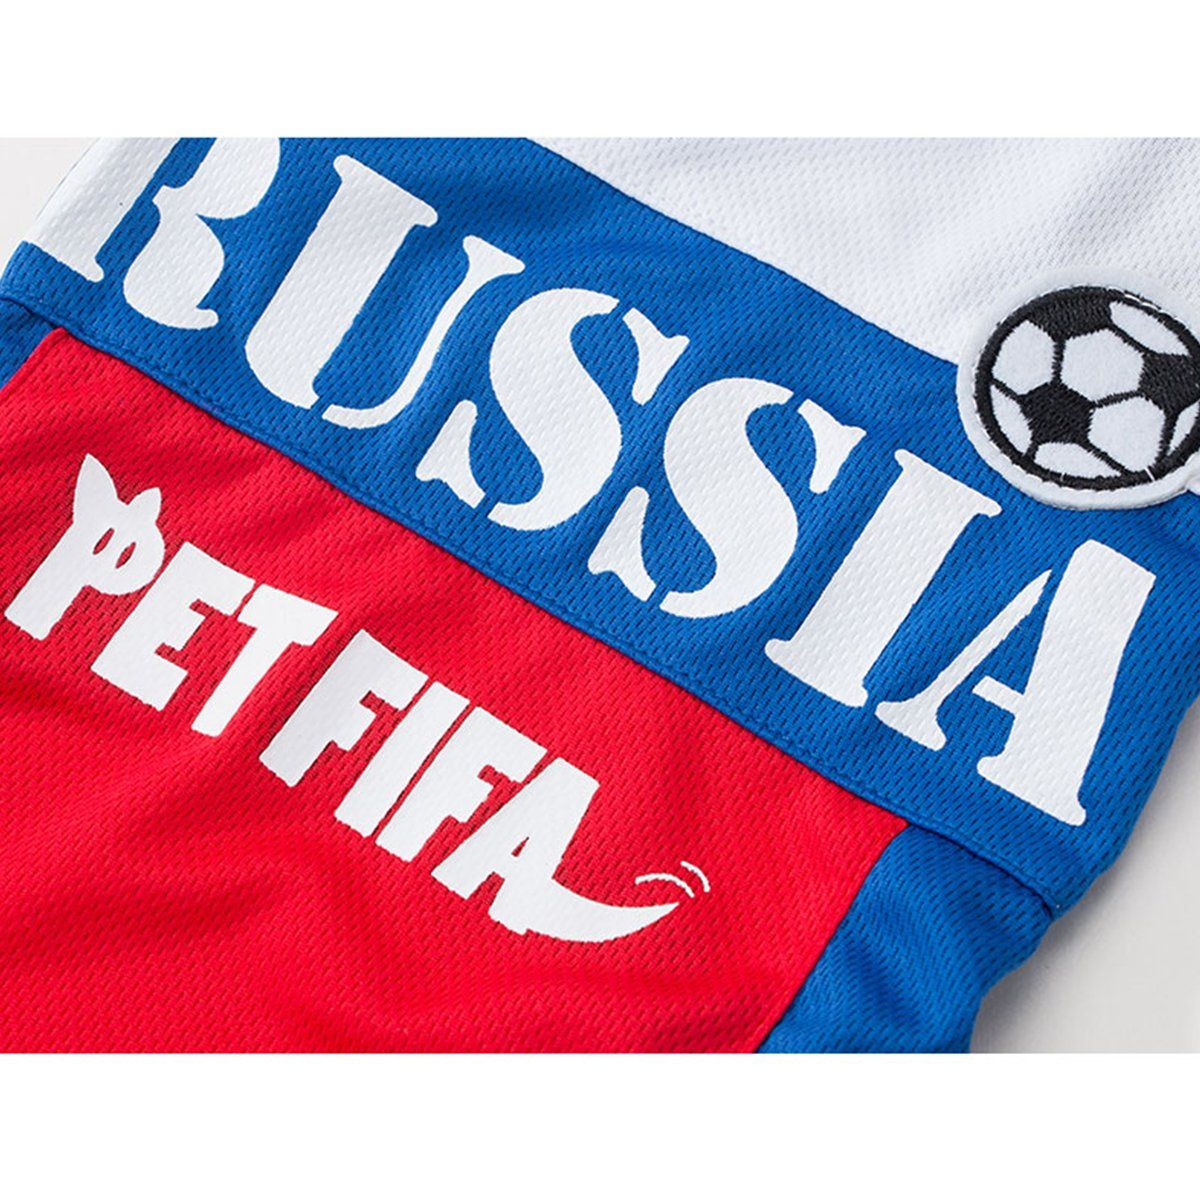 000388f89 Besmall Dog Tshirt Costume Sport Jersey Pet National Flag Football Soccer  World Cup FIFA Russia XL    Want to know a lot more